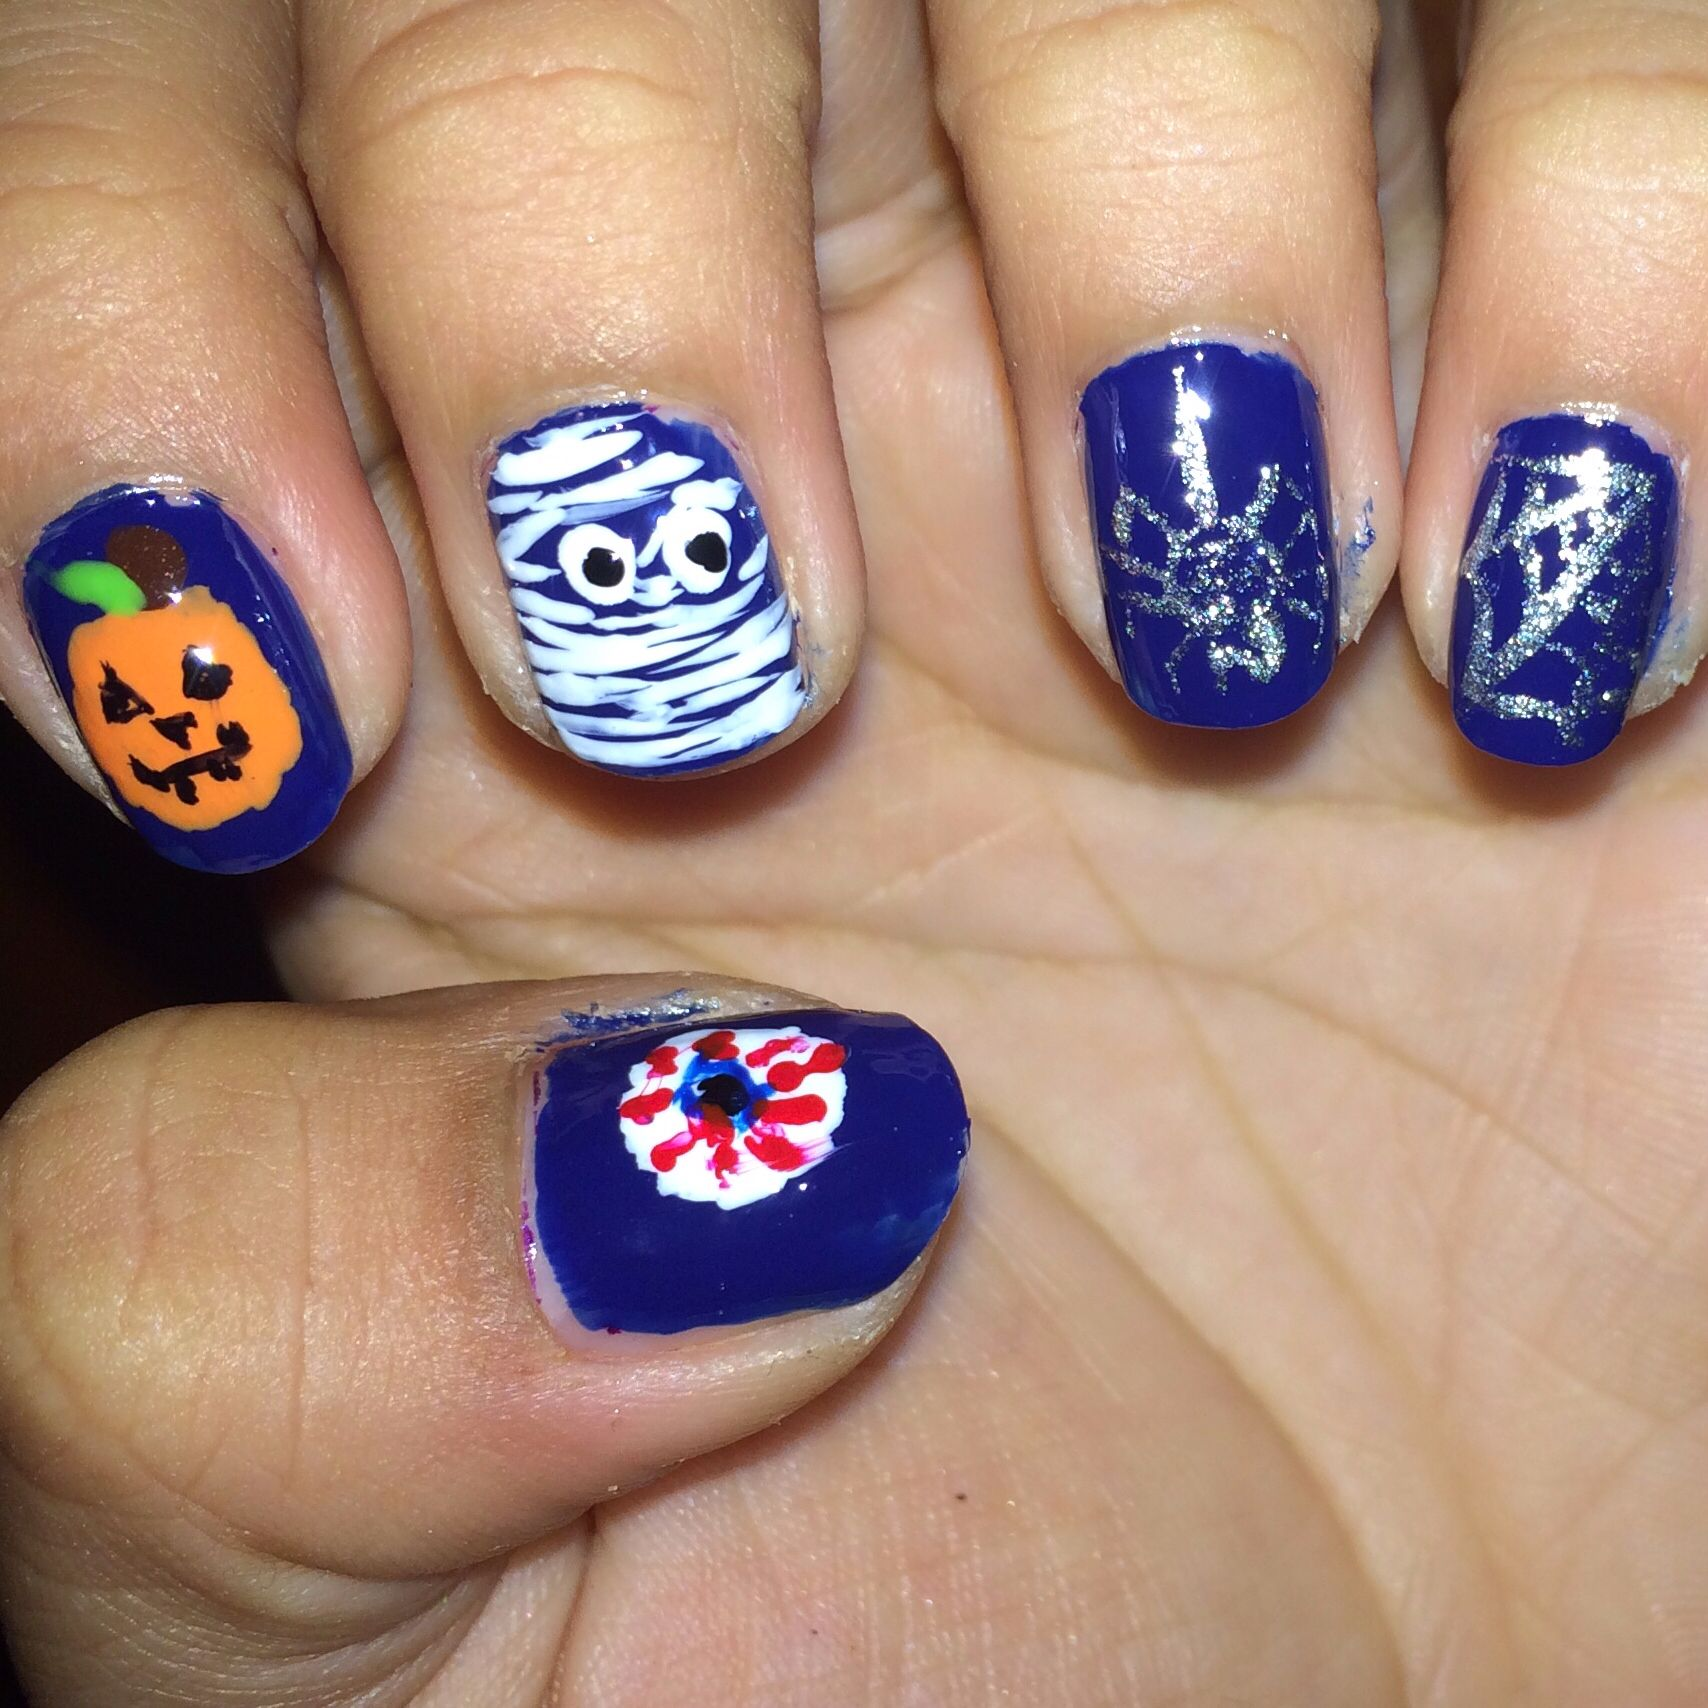 DIY manicure I did for Halloween including nail art spiderweb ...